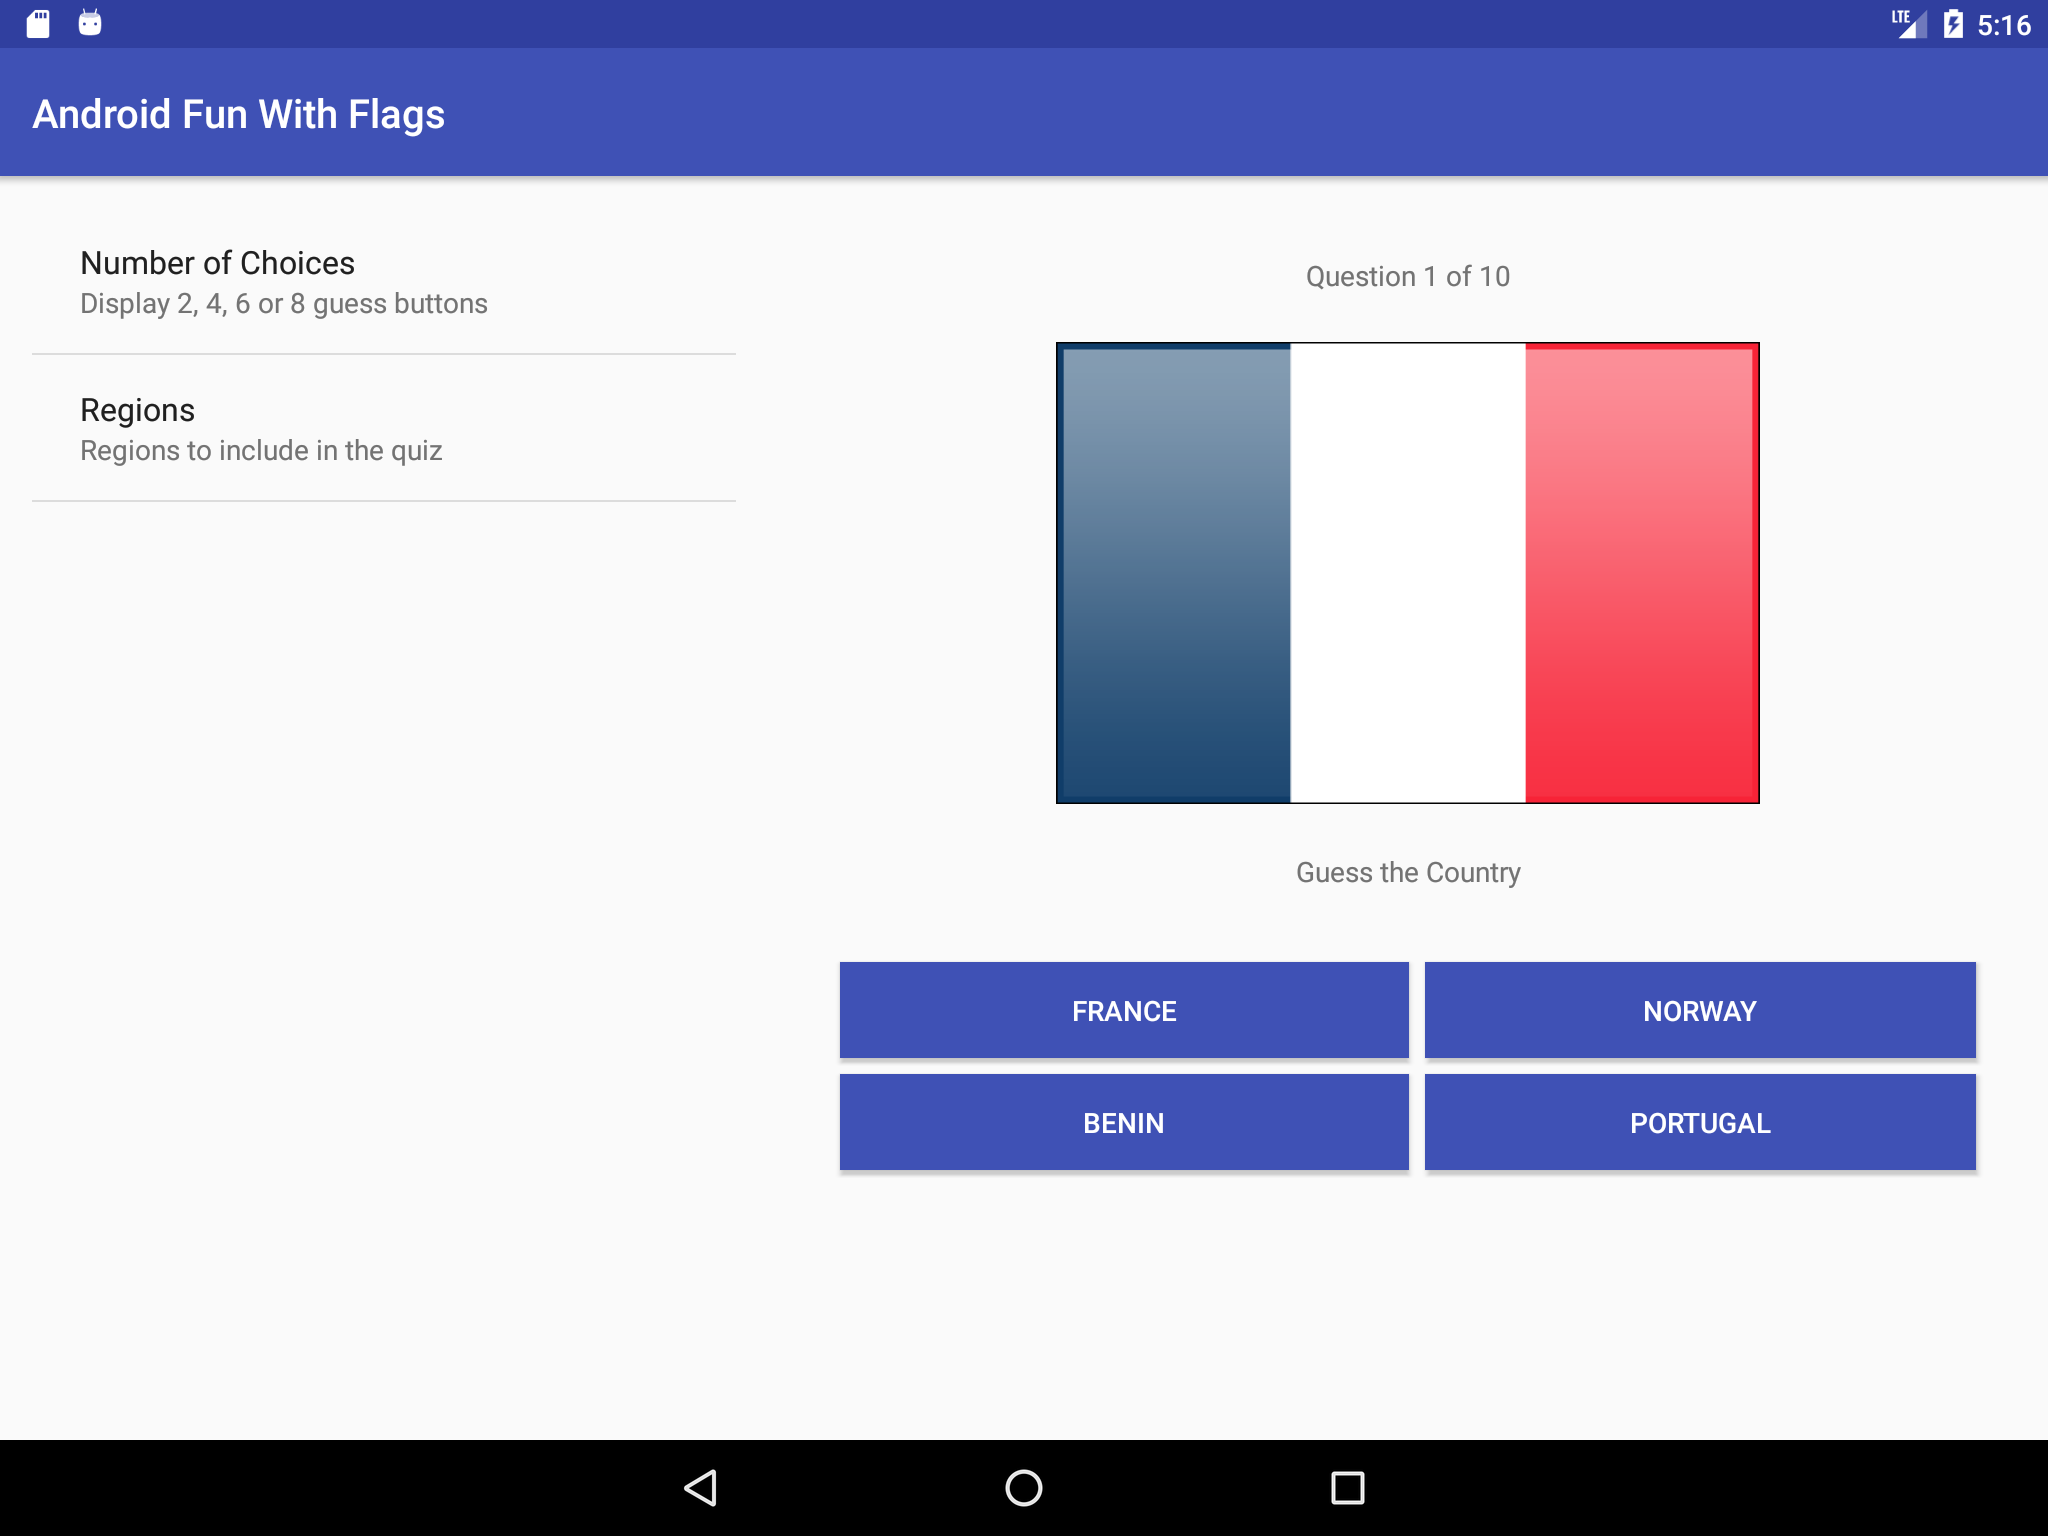 GitHub - nadershamma/android-fun-with-flags-quiz-app: Simple